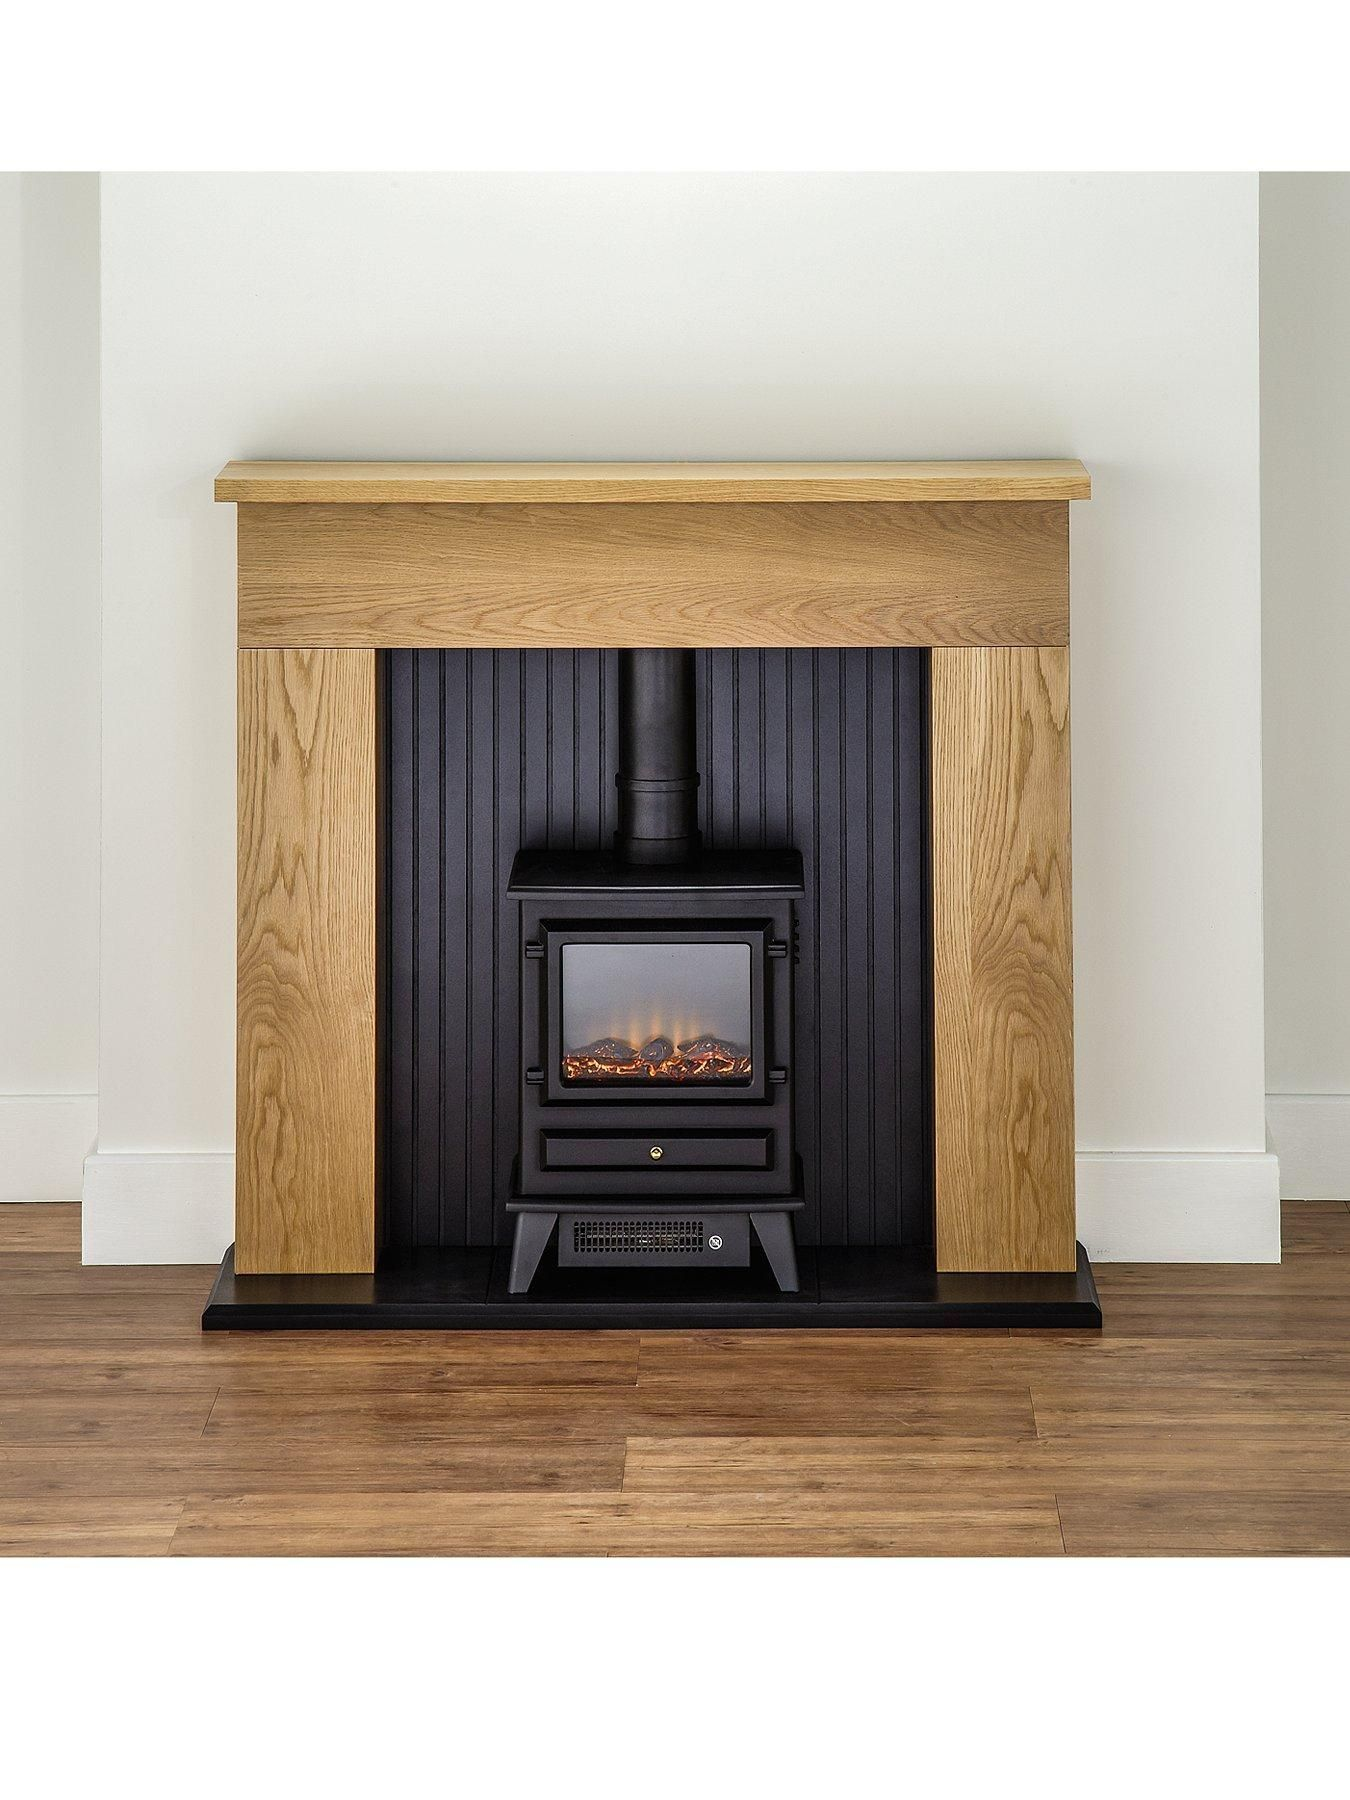 Hottest Free Electric Fireplace Victorian Suggestions Traditional Electric Fireplace Suite Traditi Fireplace Suites Oak Electric Fireplace Electric Fireplace